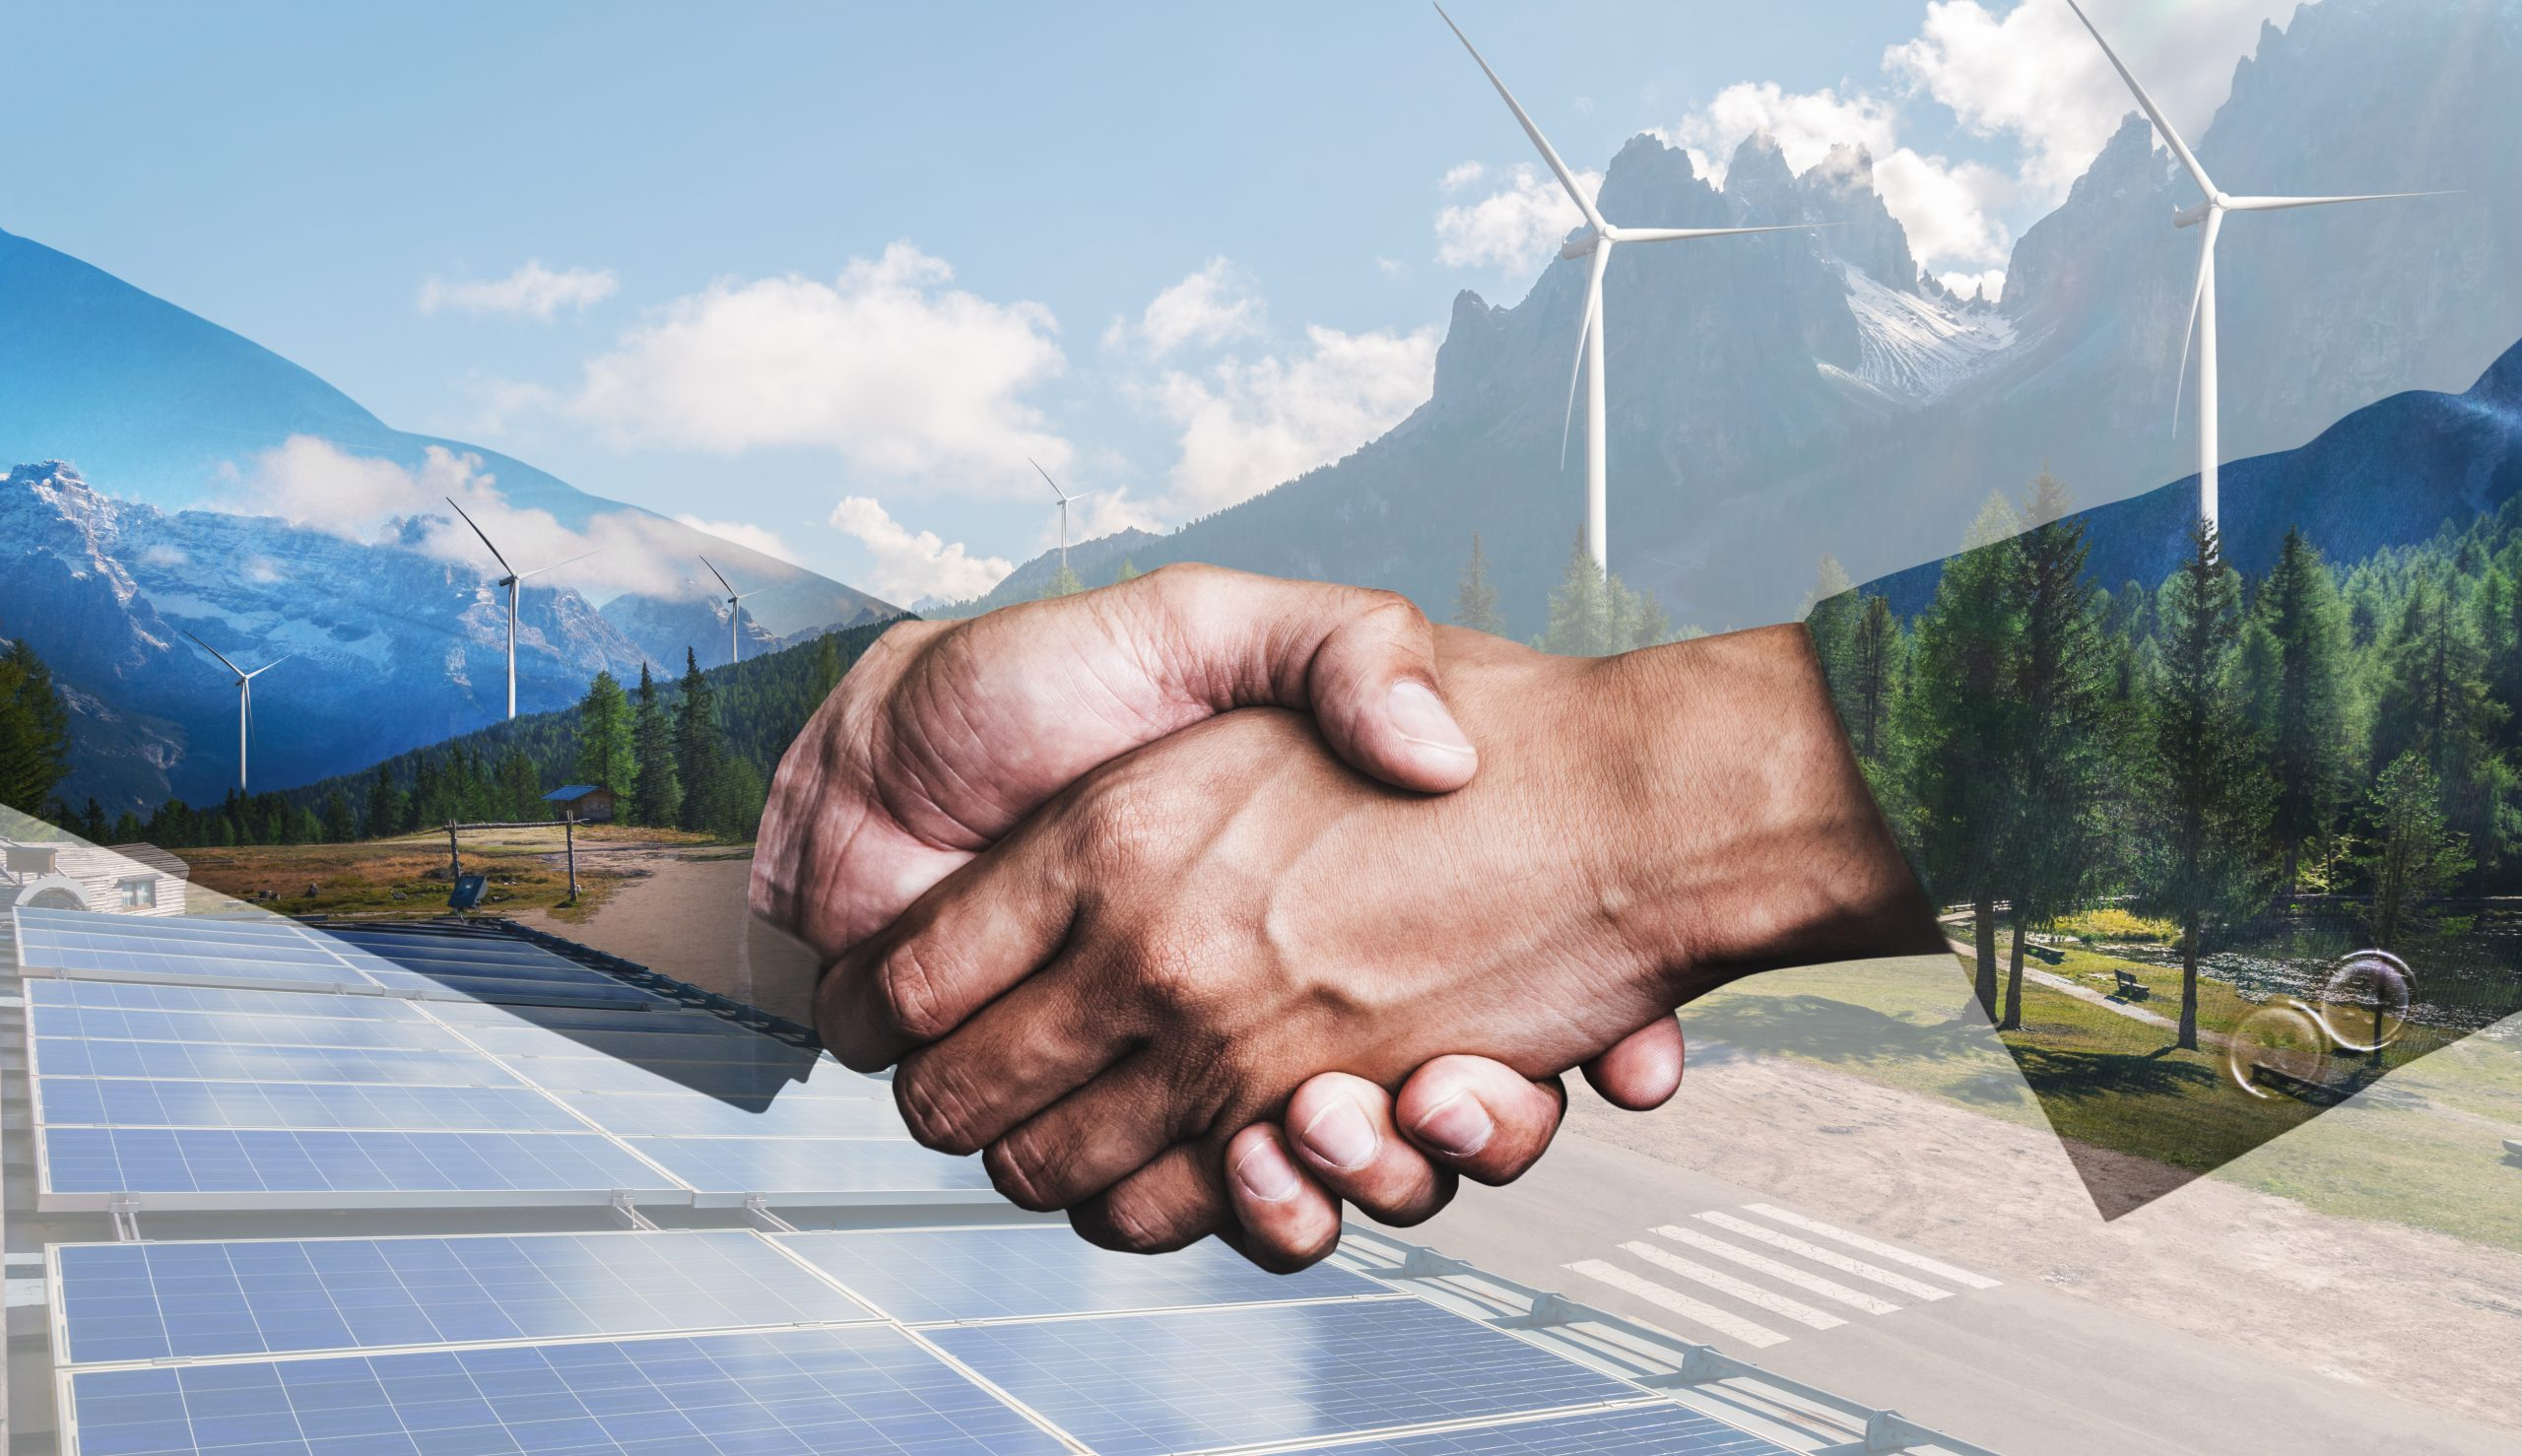 Double exposure graphic of business people handshake over wind turbine farm and green renewable energy worker interface